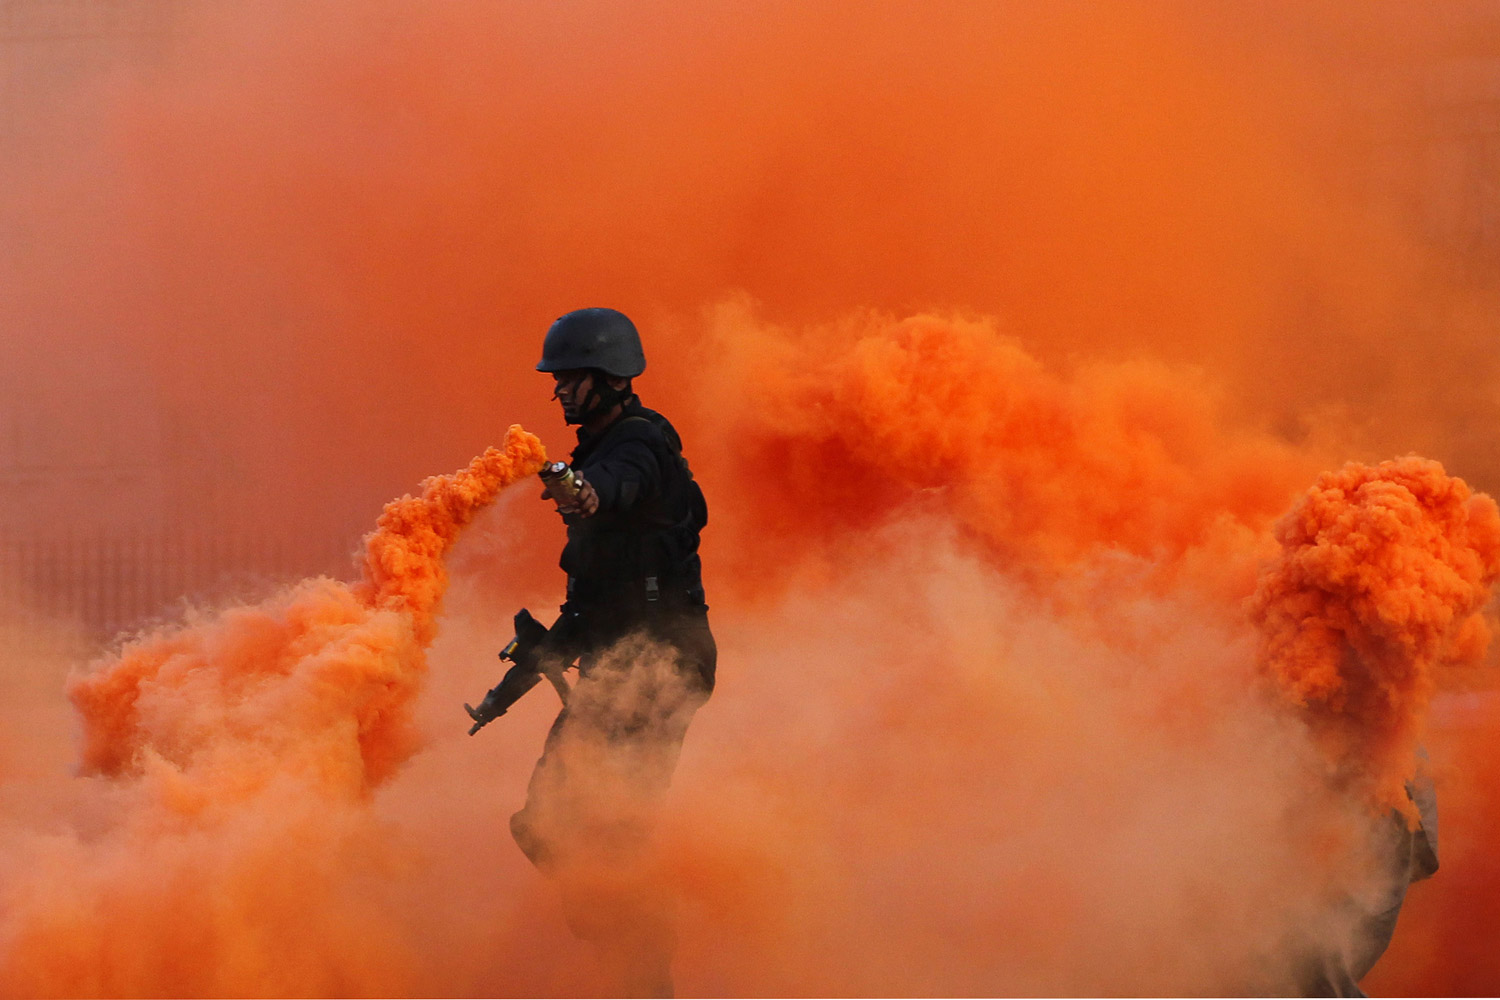 December 2, 2011. An Indian naval commando dispenses orange smoke during a dress rehearsal ahead of Navy Day in Mumbai, India.